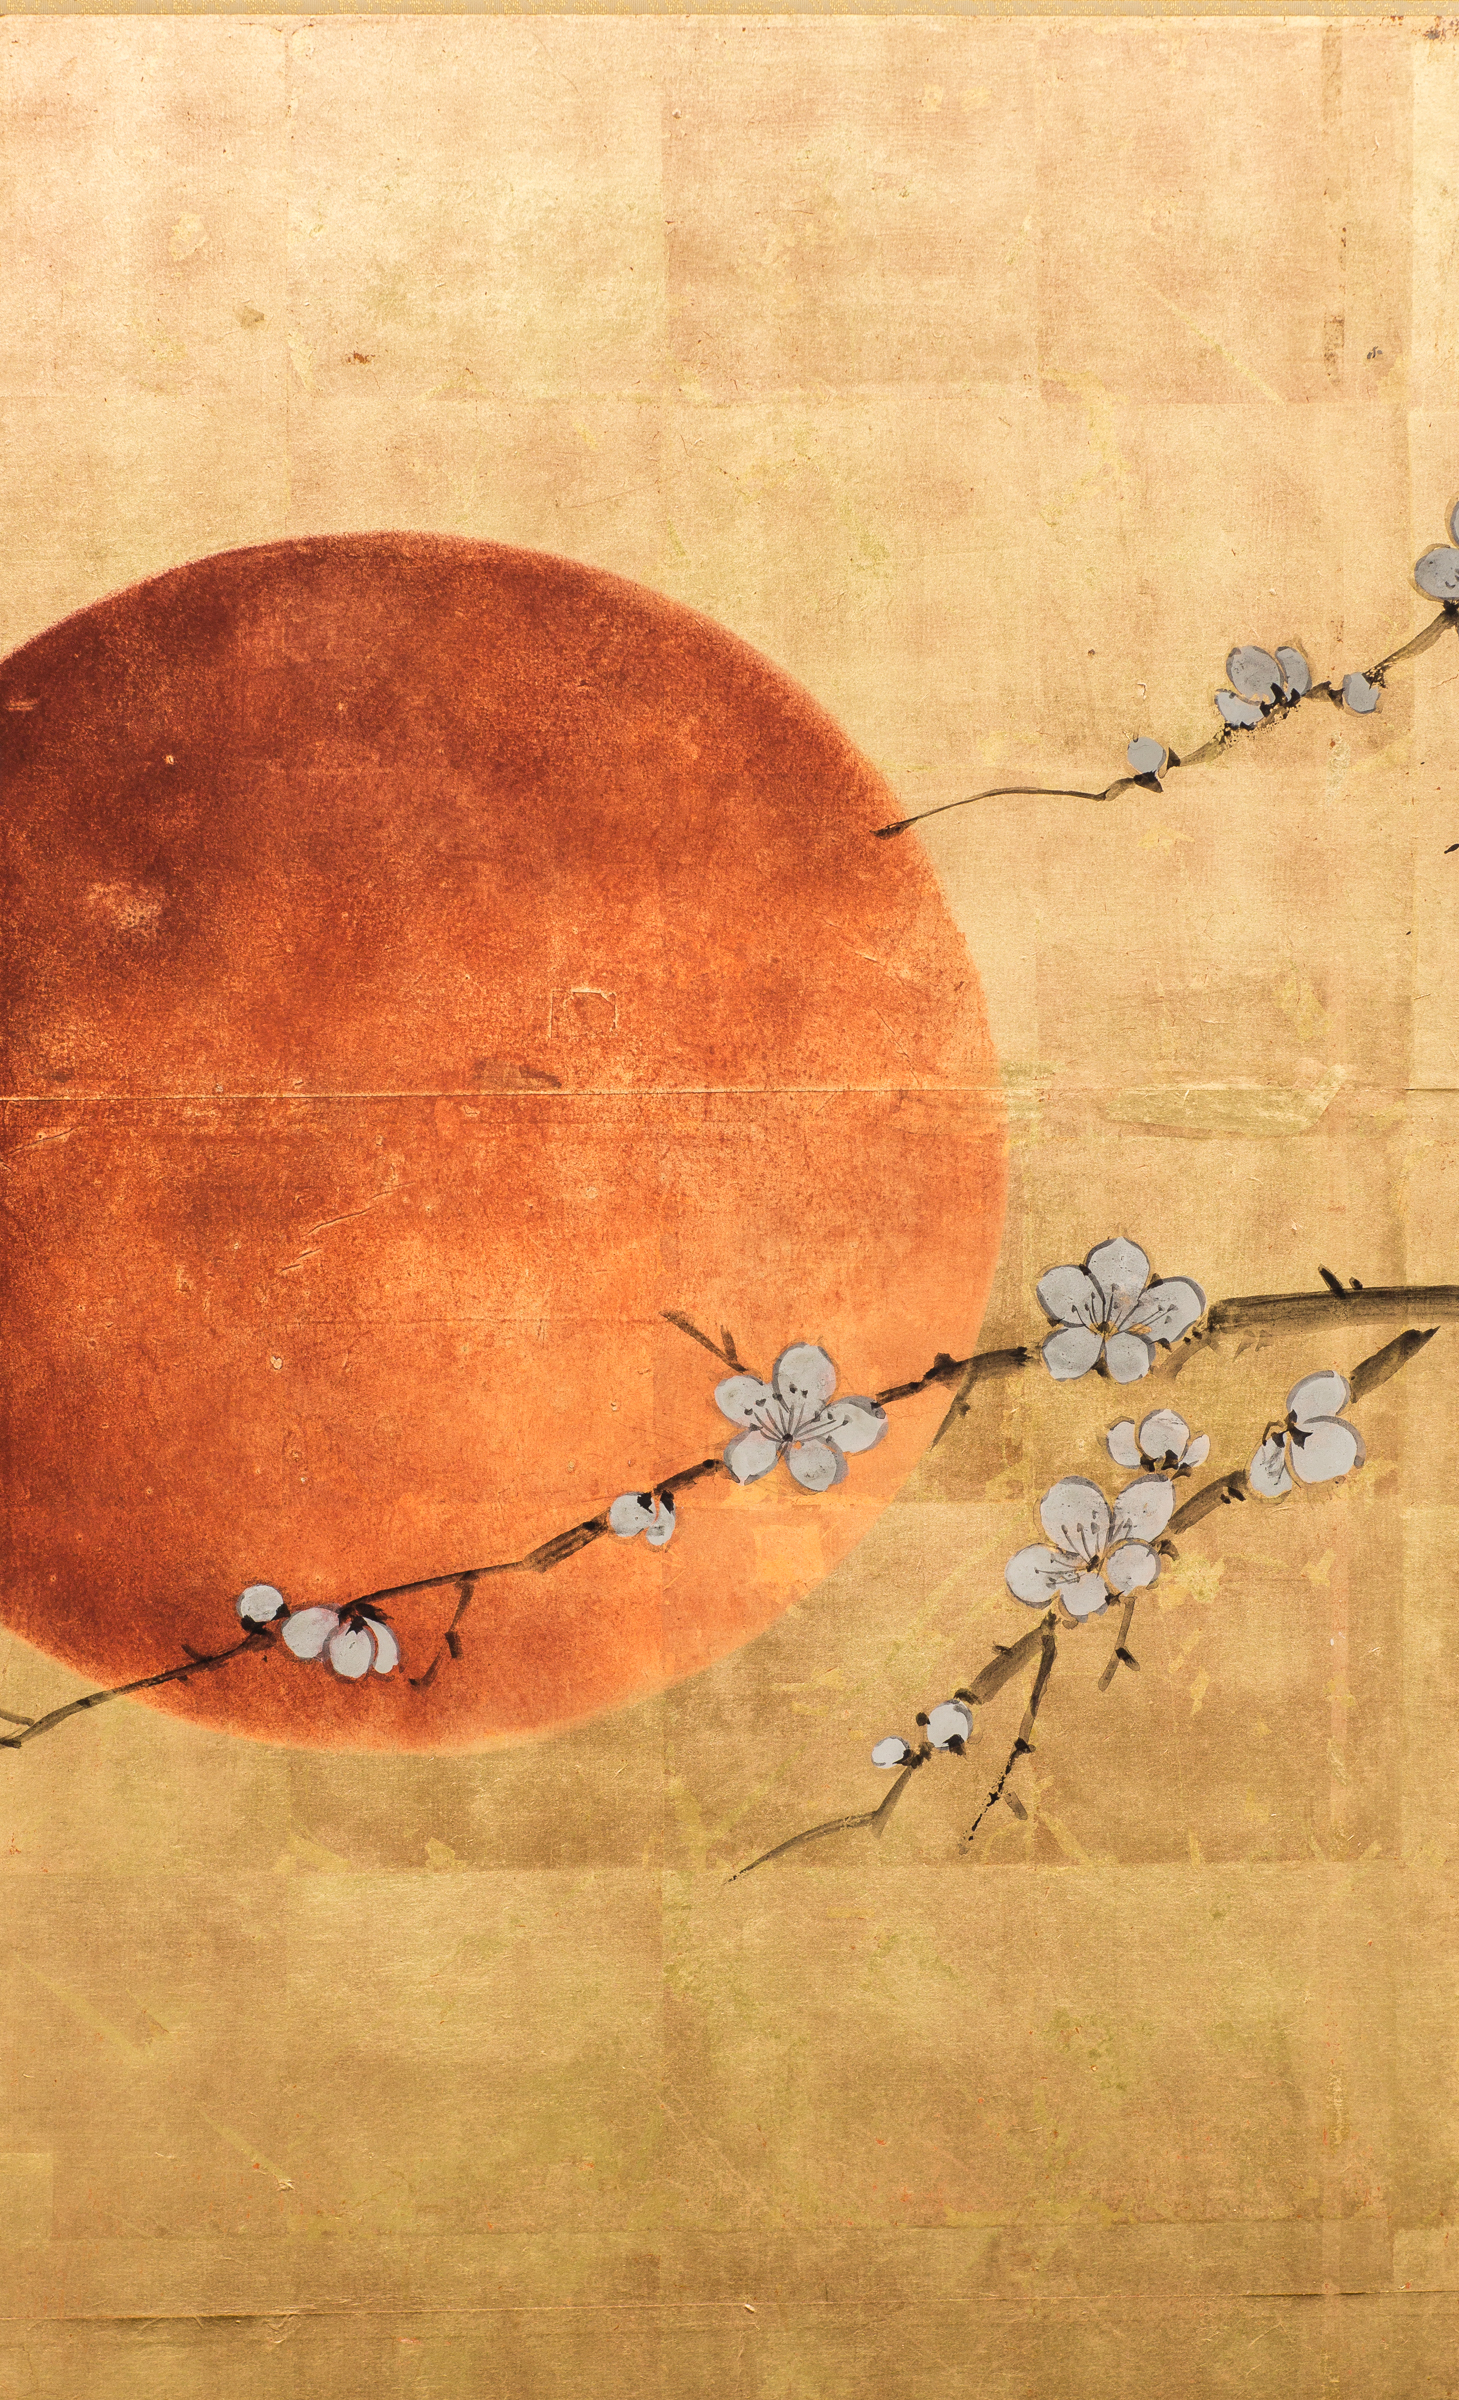 Japanese Four Panel Screen: Plum Blossom and Sun Over Cresting Waves